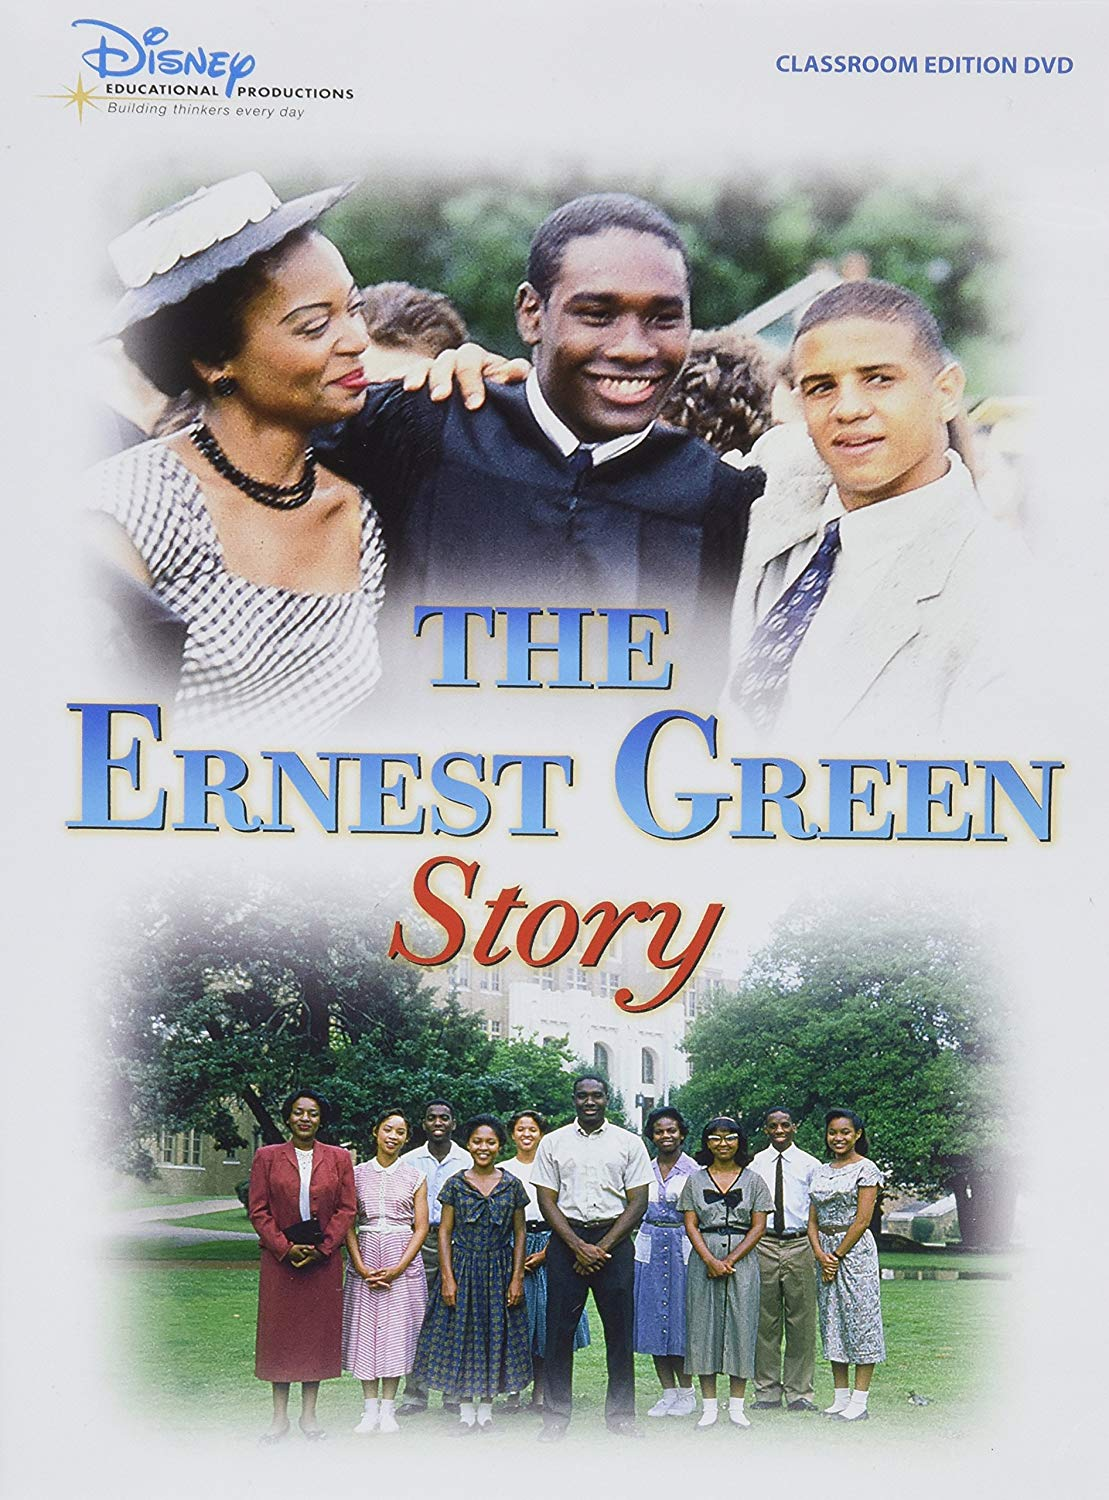 Affiche poster ernest green story disney channel